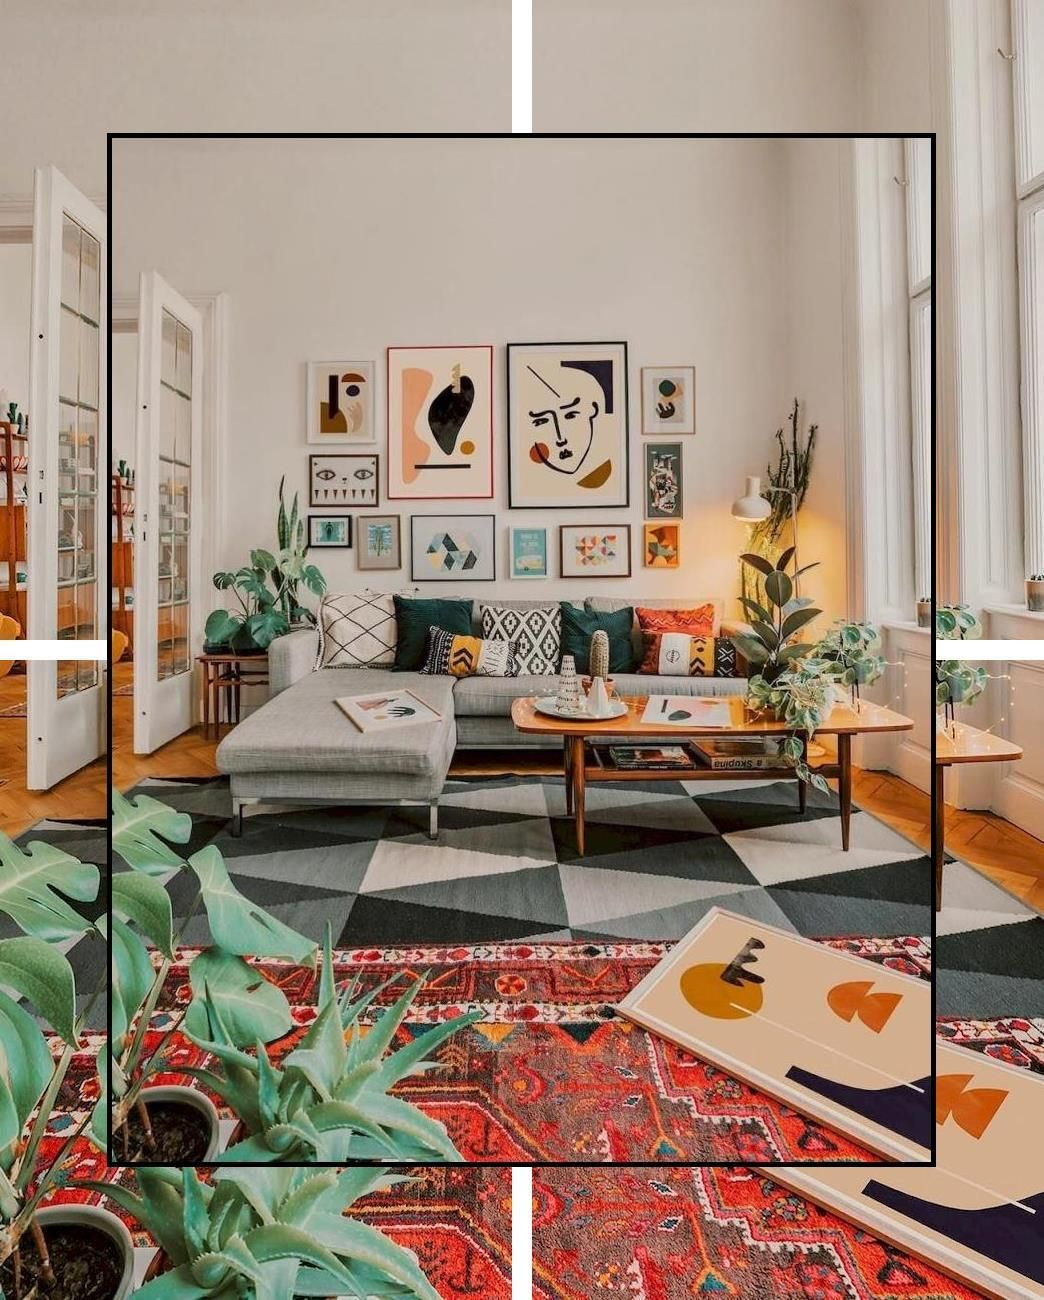 Small Living Room Designs Sitting Room Furniture Design Simple Home Interior D Colourful Living Room Colorful Apartment Living Room Small Living Room Decor